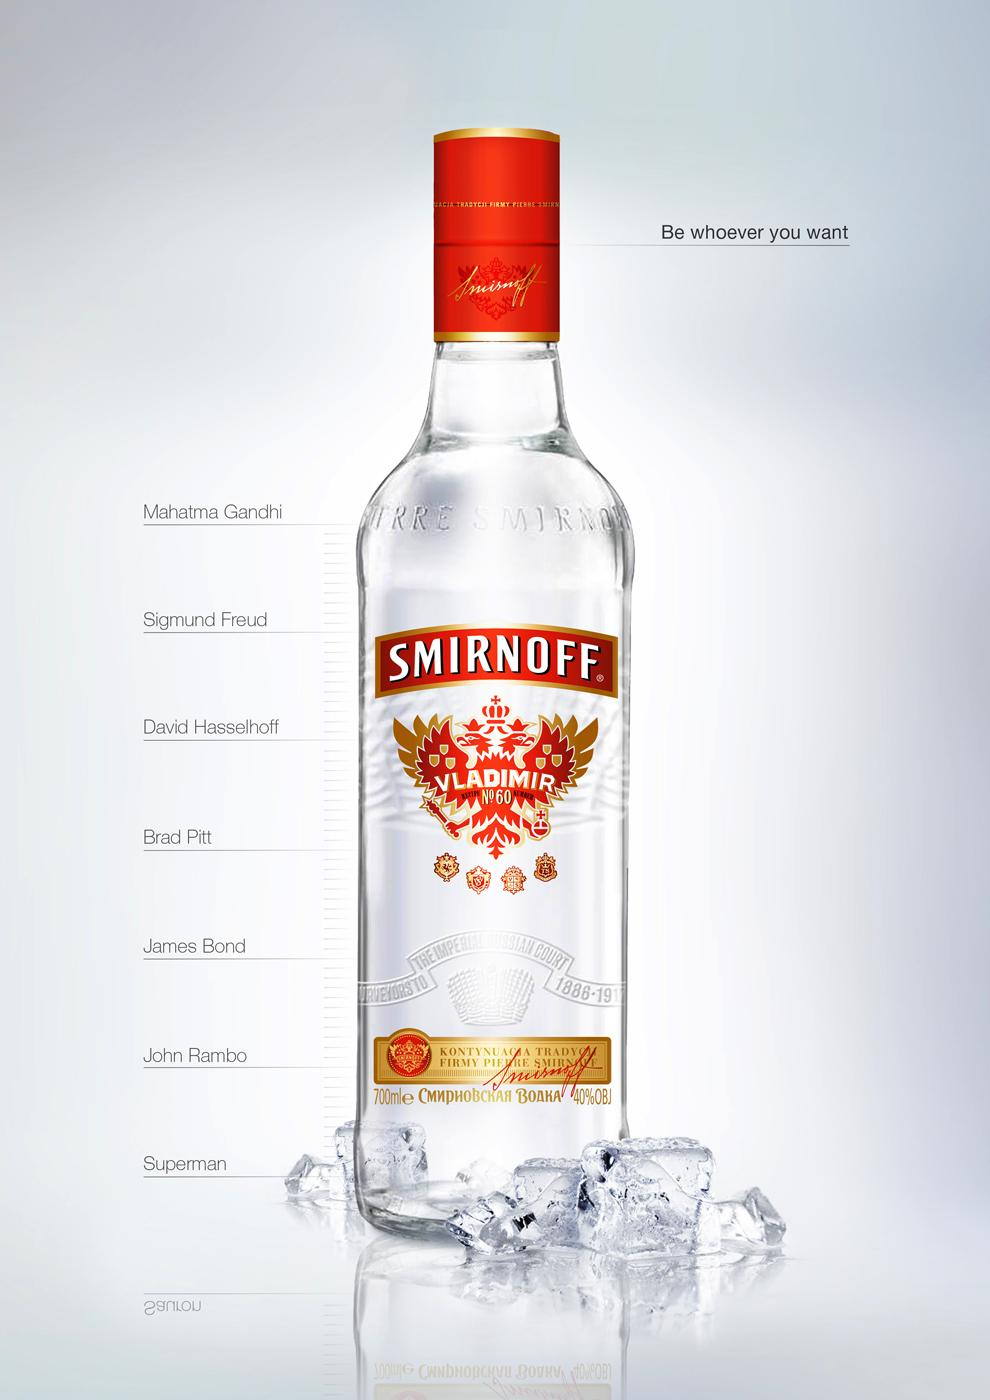 Smirnoff Print Ad -  Be whoever you want